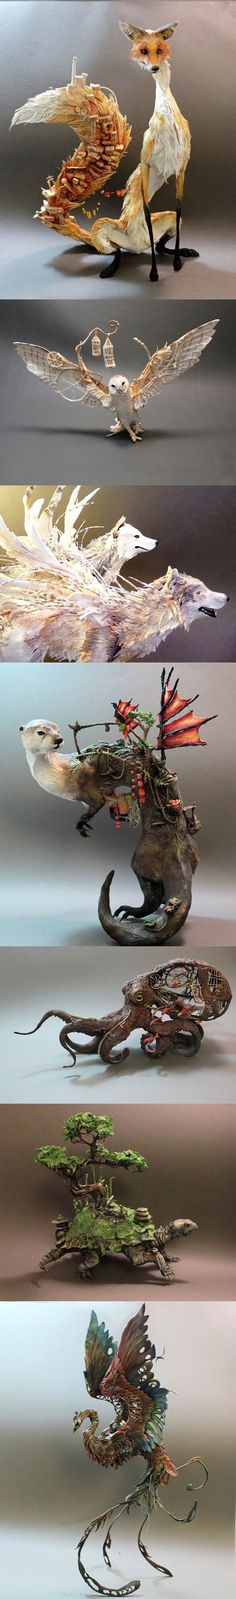 cool-sculpture-animals-boar-wolf